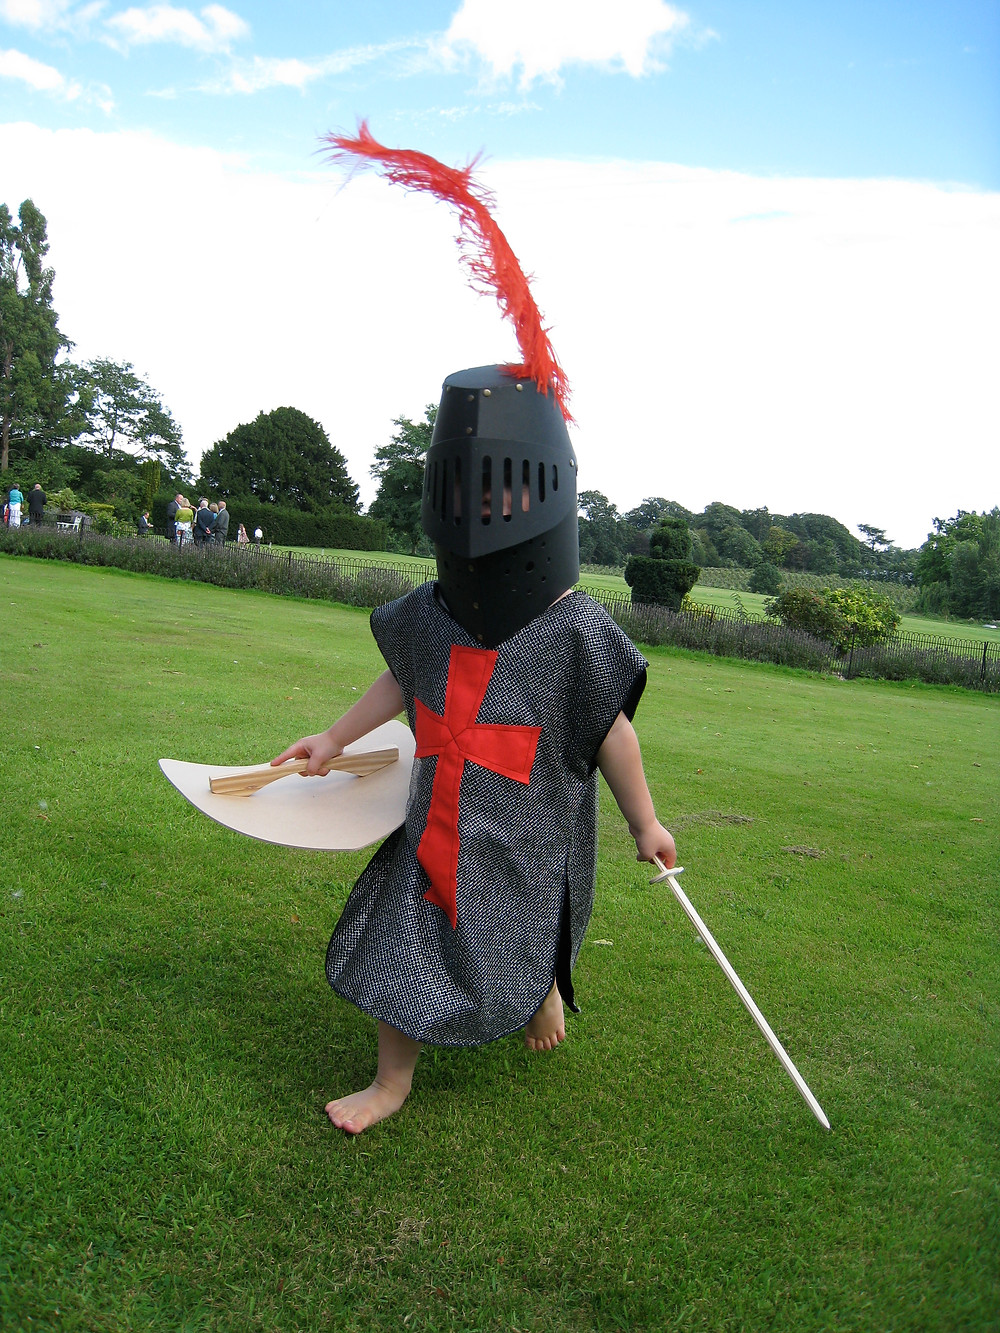 Child in Crusader Knight costume